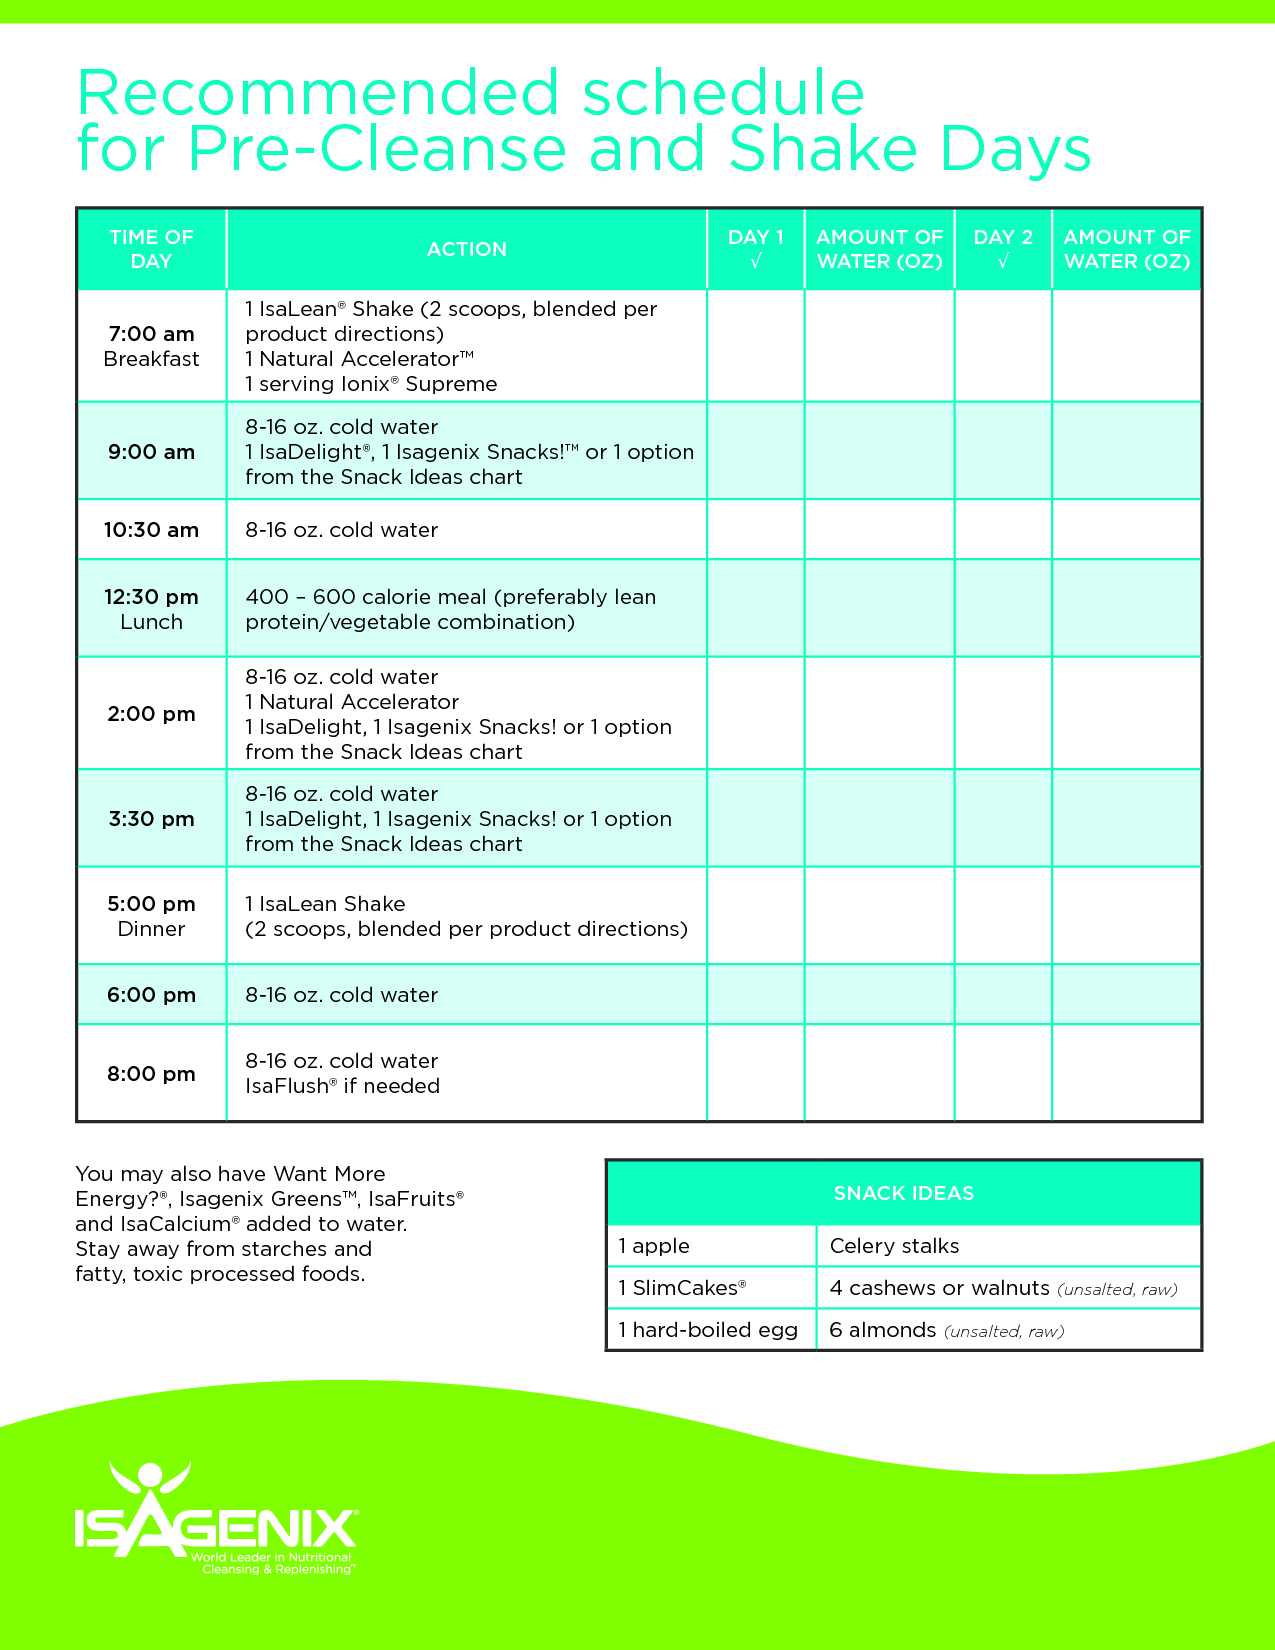 Isagenix Shake Day Schedule - Google Search | Isagenix with regard to Isagenix Shake Day Schedule Printable